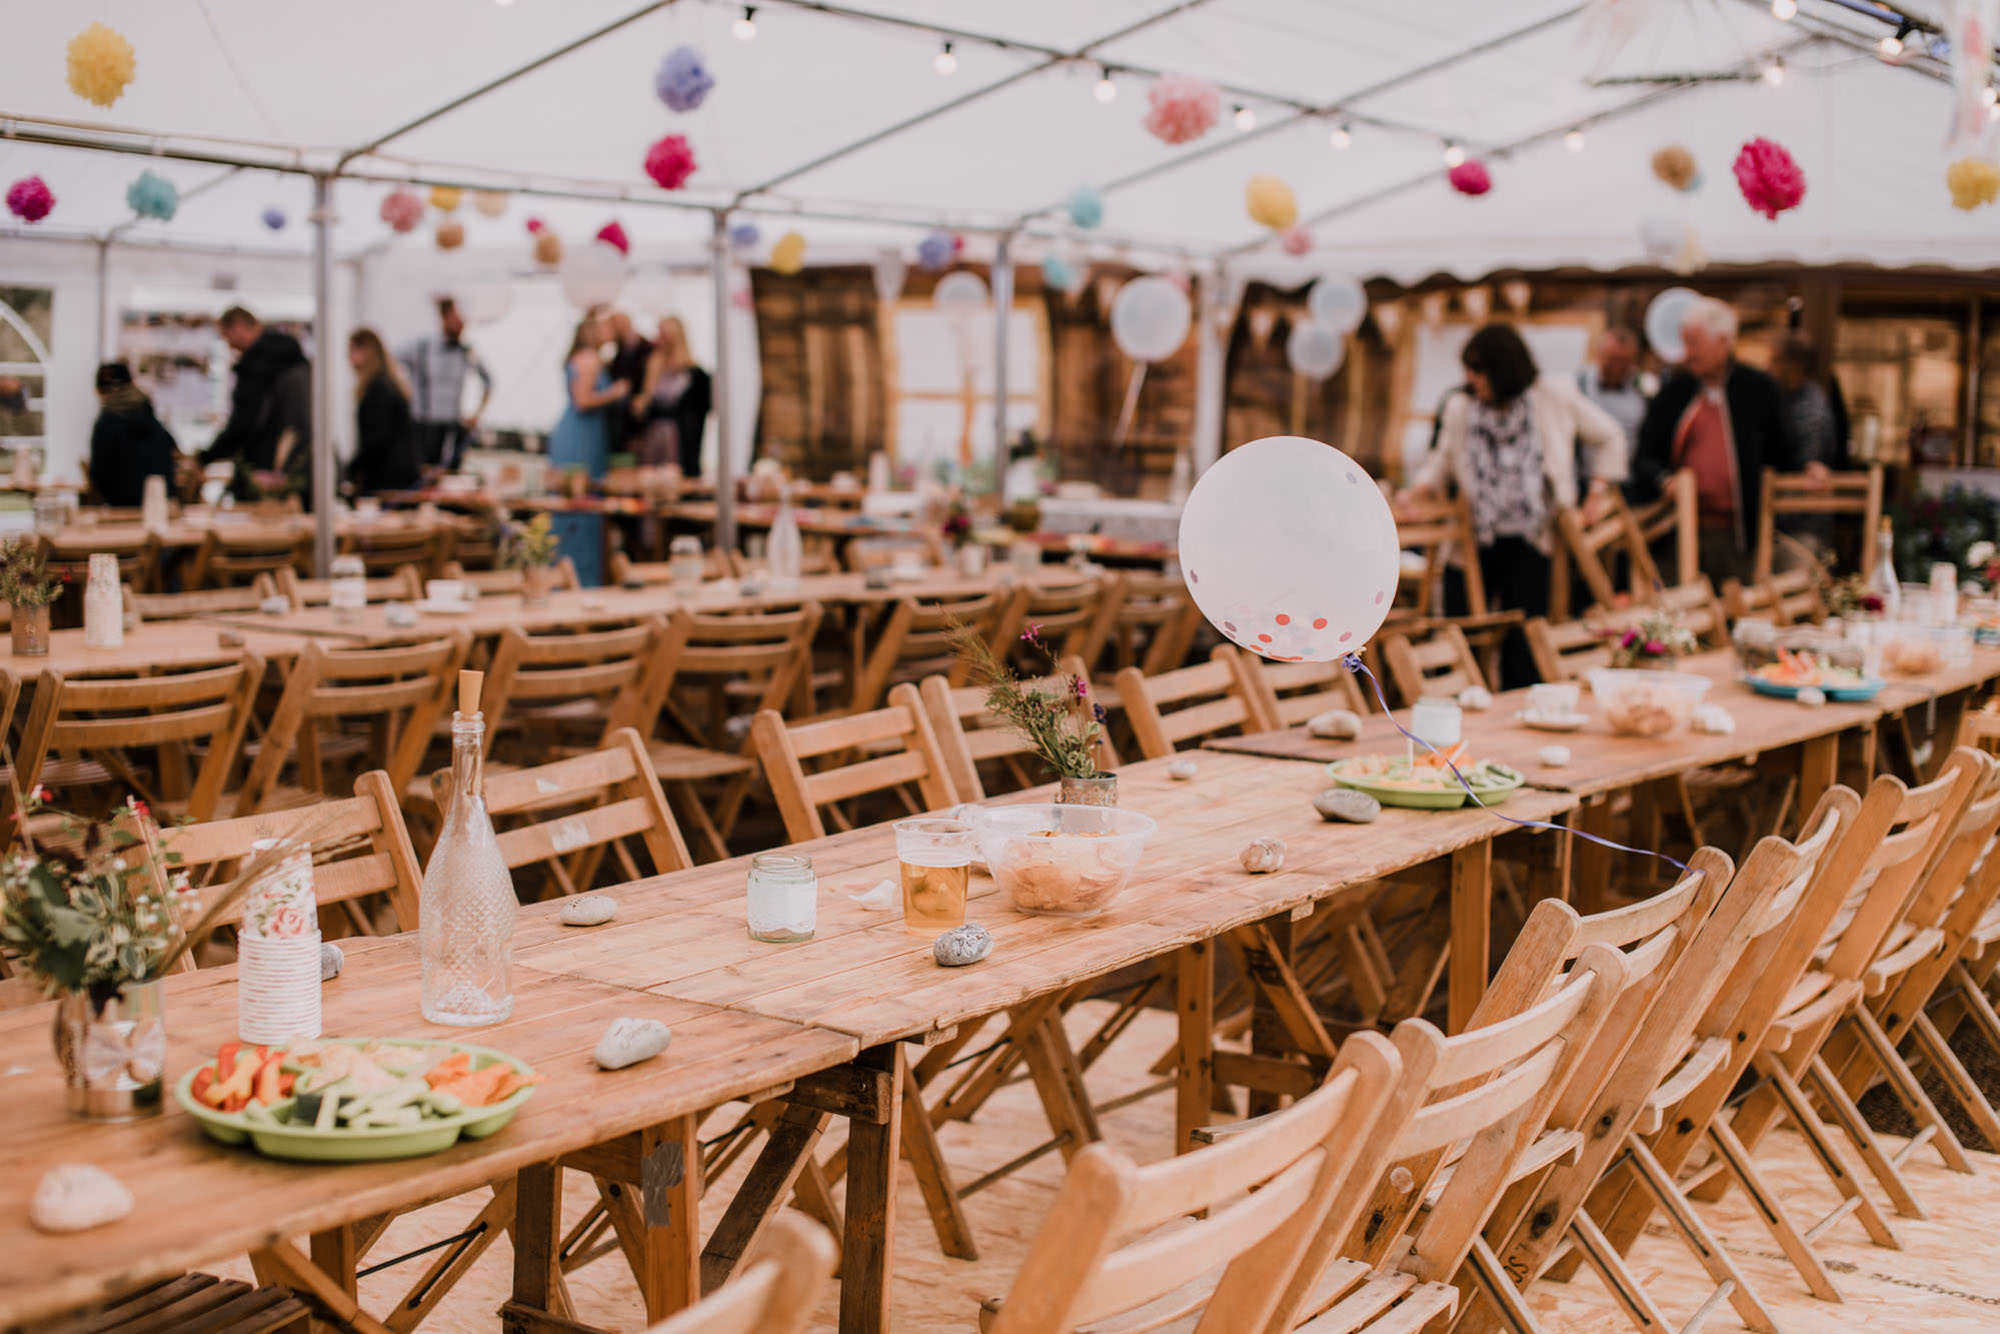 rent event - wedding props and furniture hire